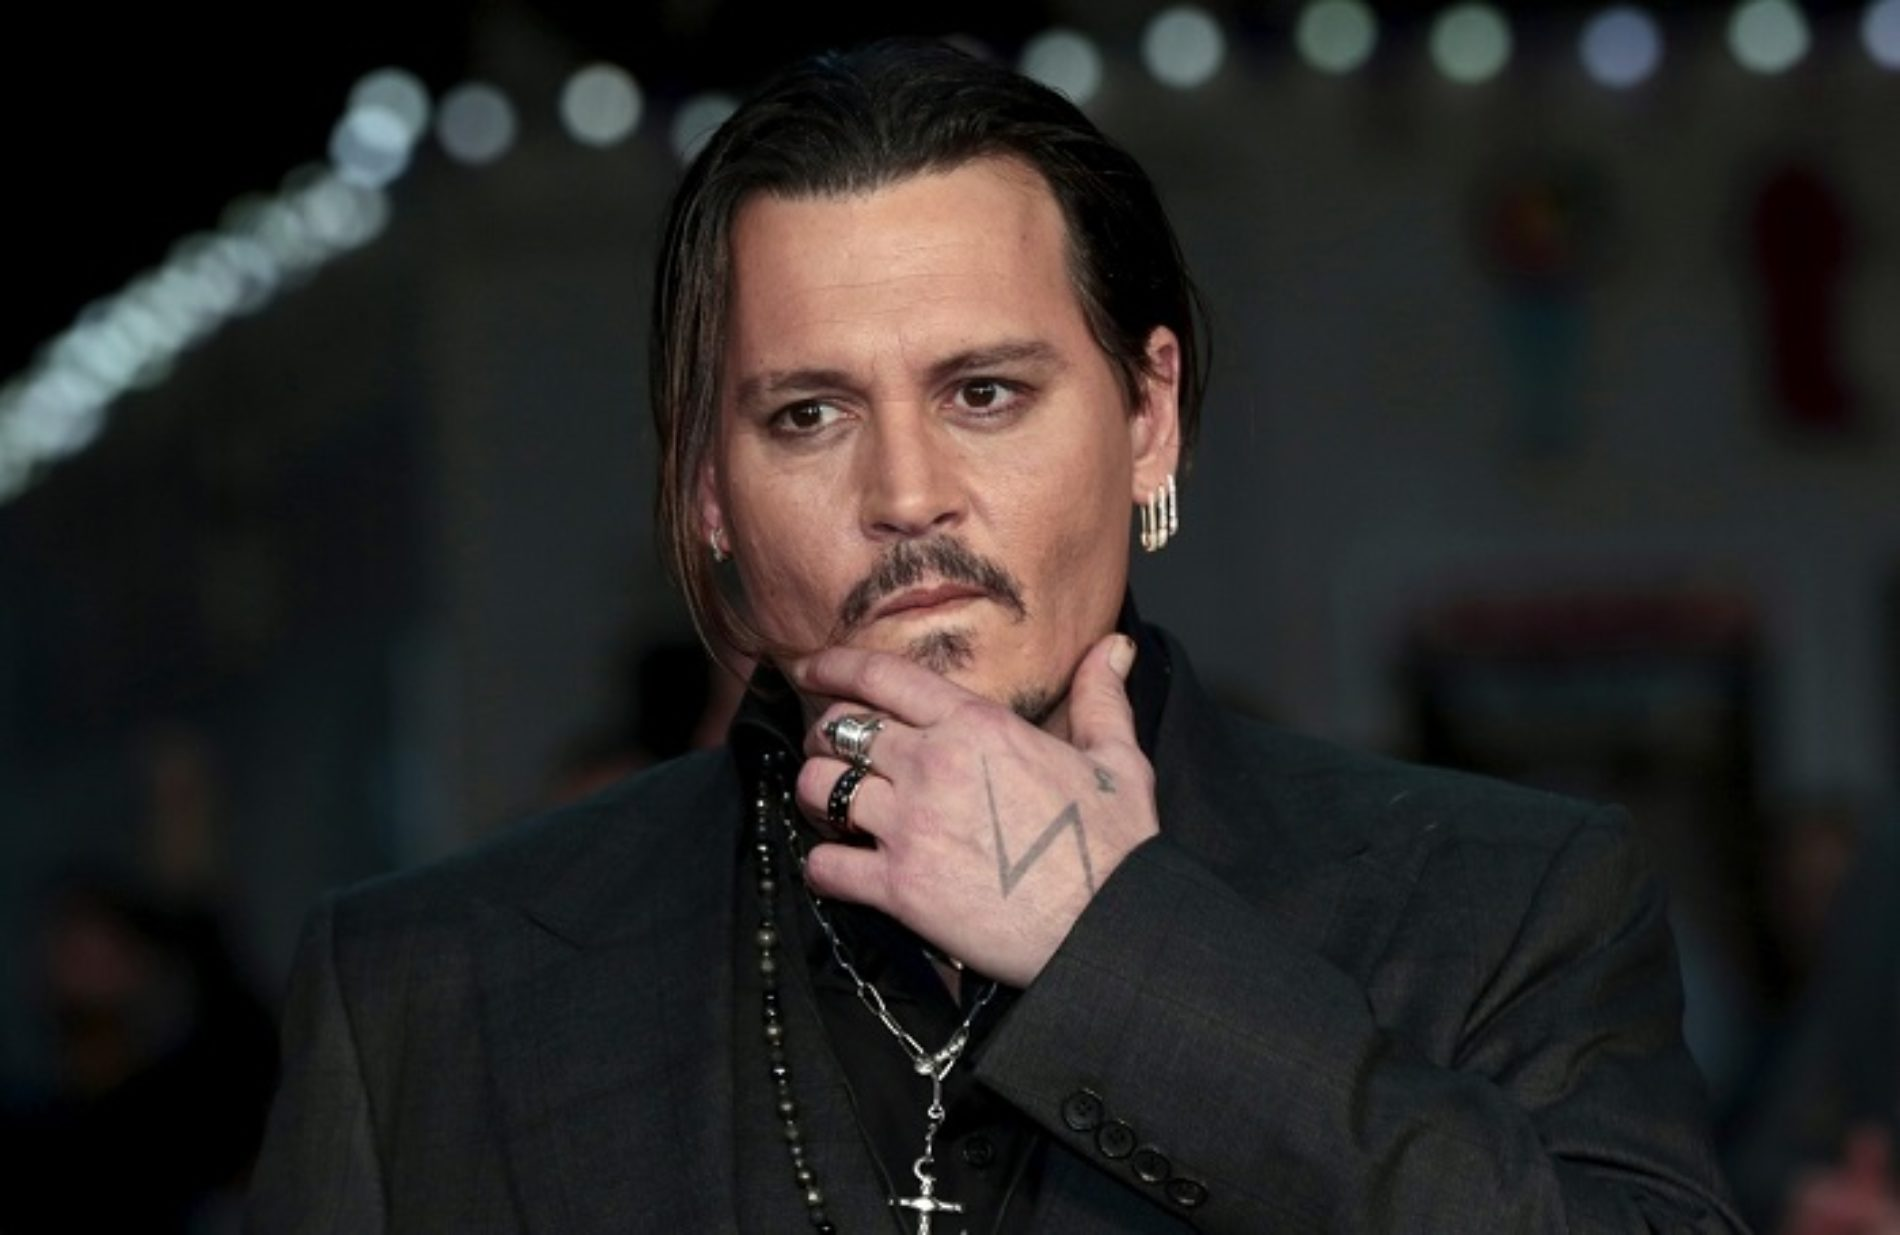 Johnny Depp might be Dumbledore's gay love interest in upcoming Harry Potter spin-off